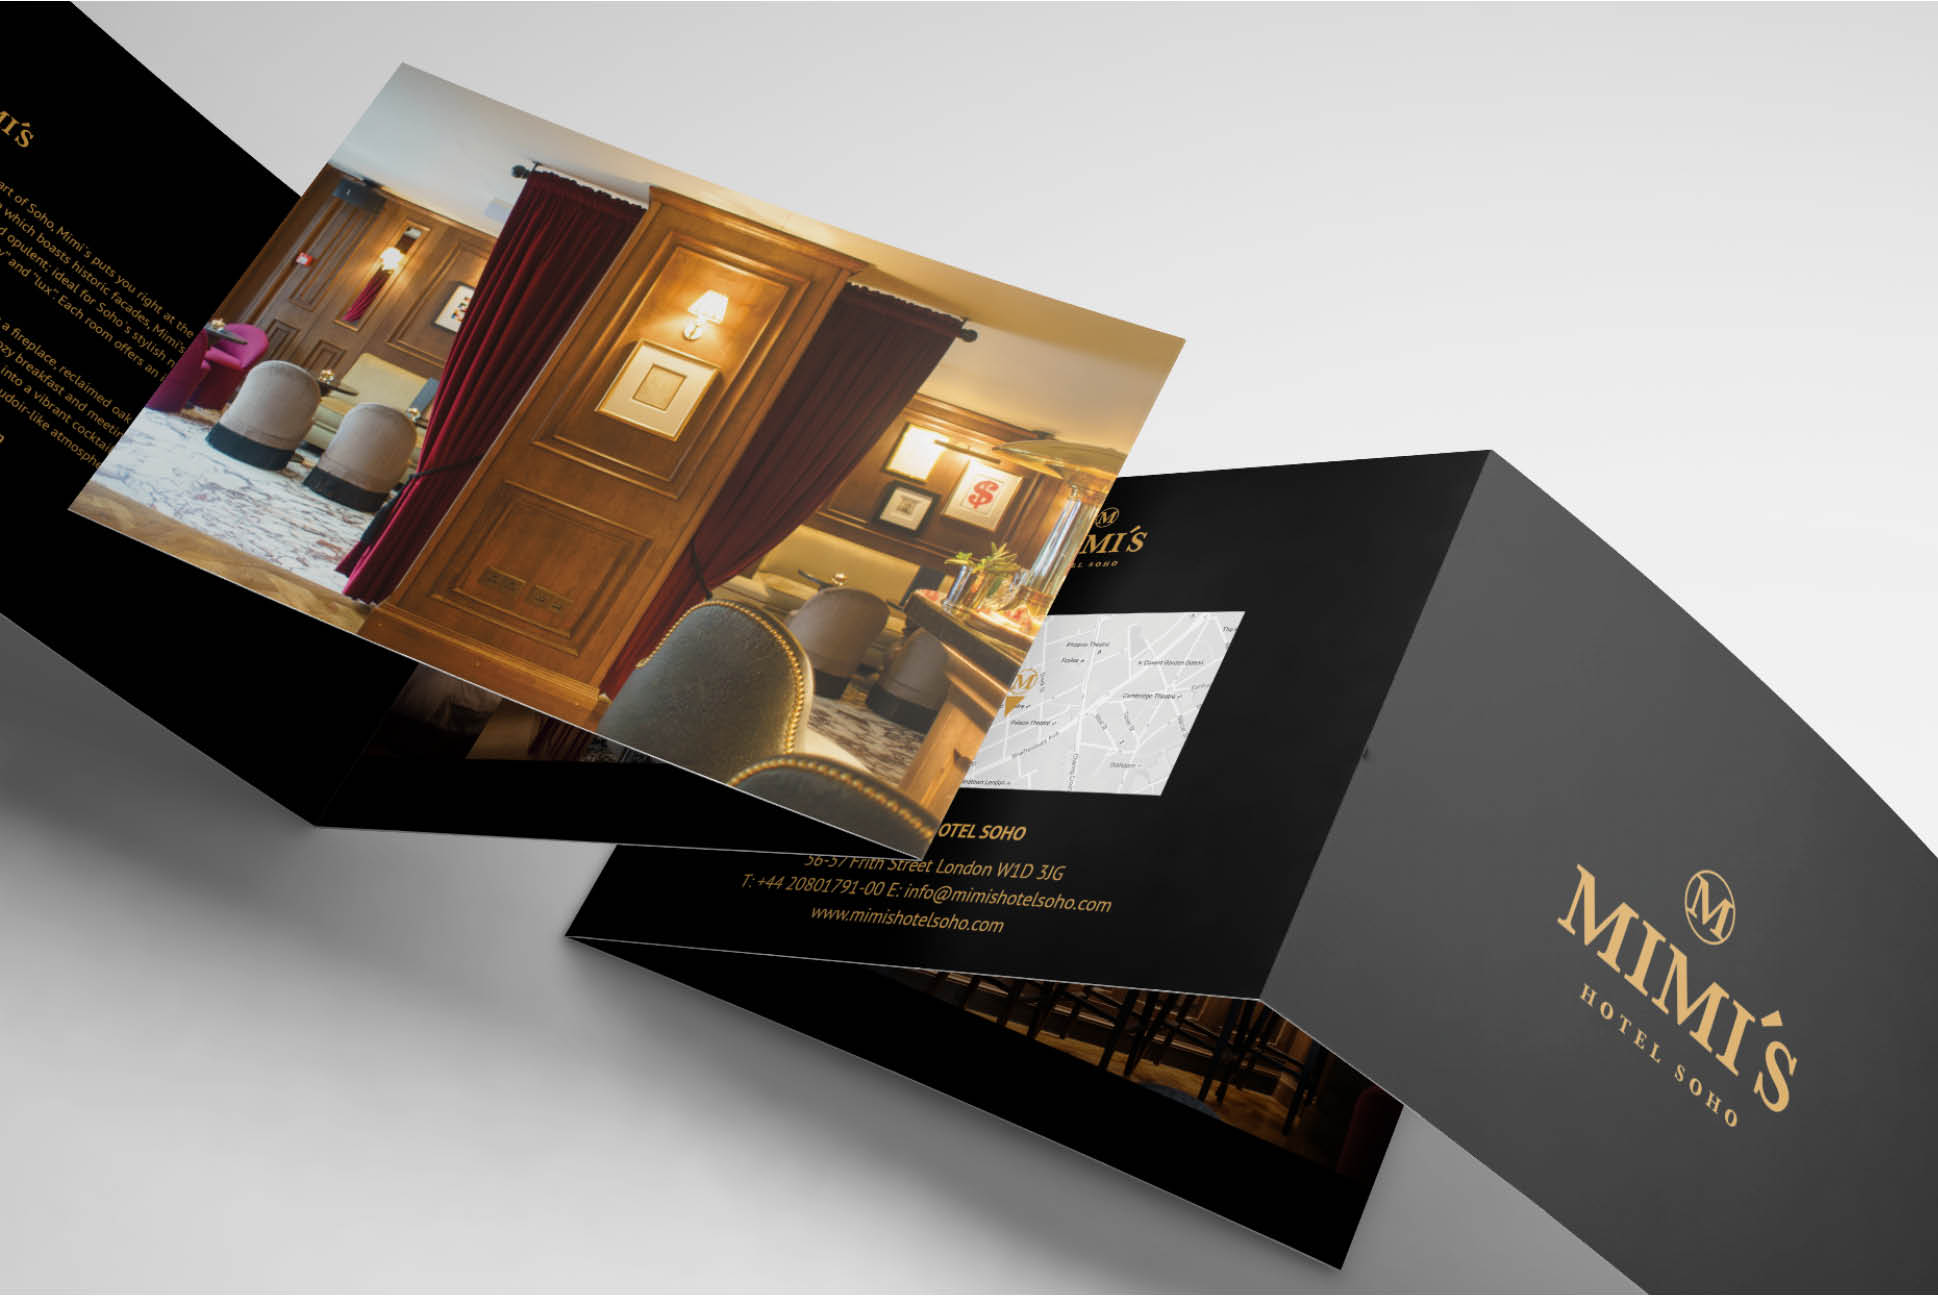 Mimi's Hotel Soho brochure | | Independent Marketing - IM London | Hospitality and Hotel Branding